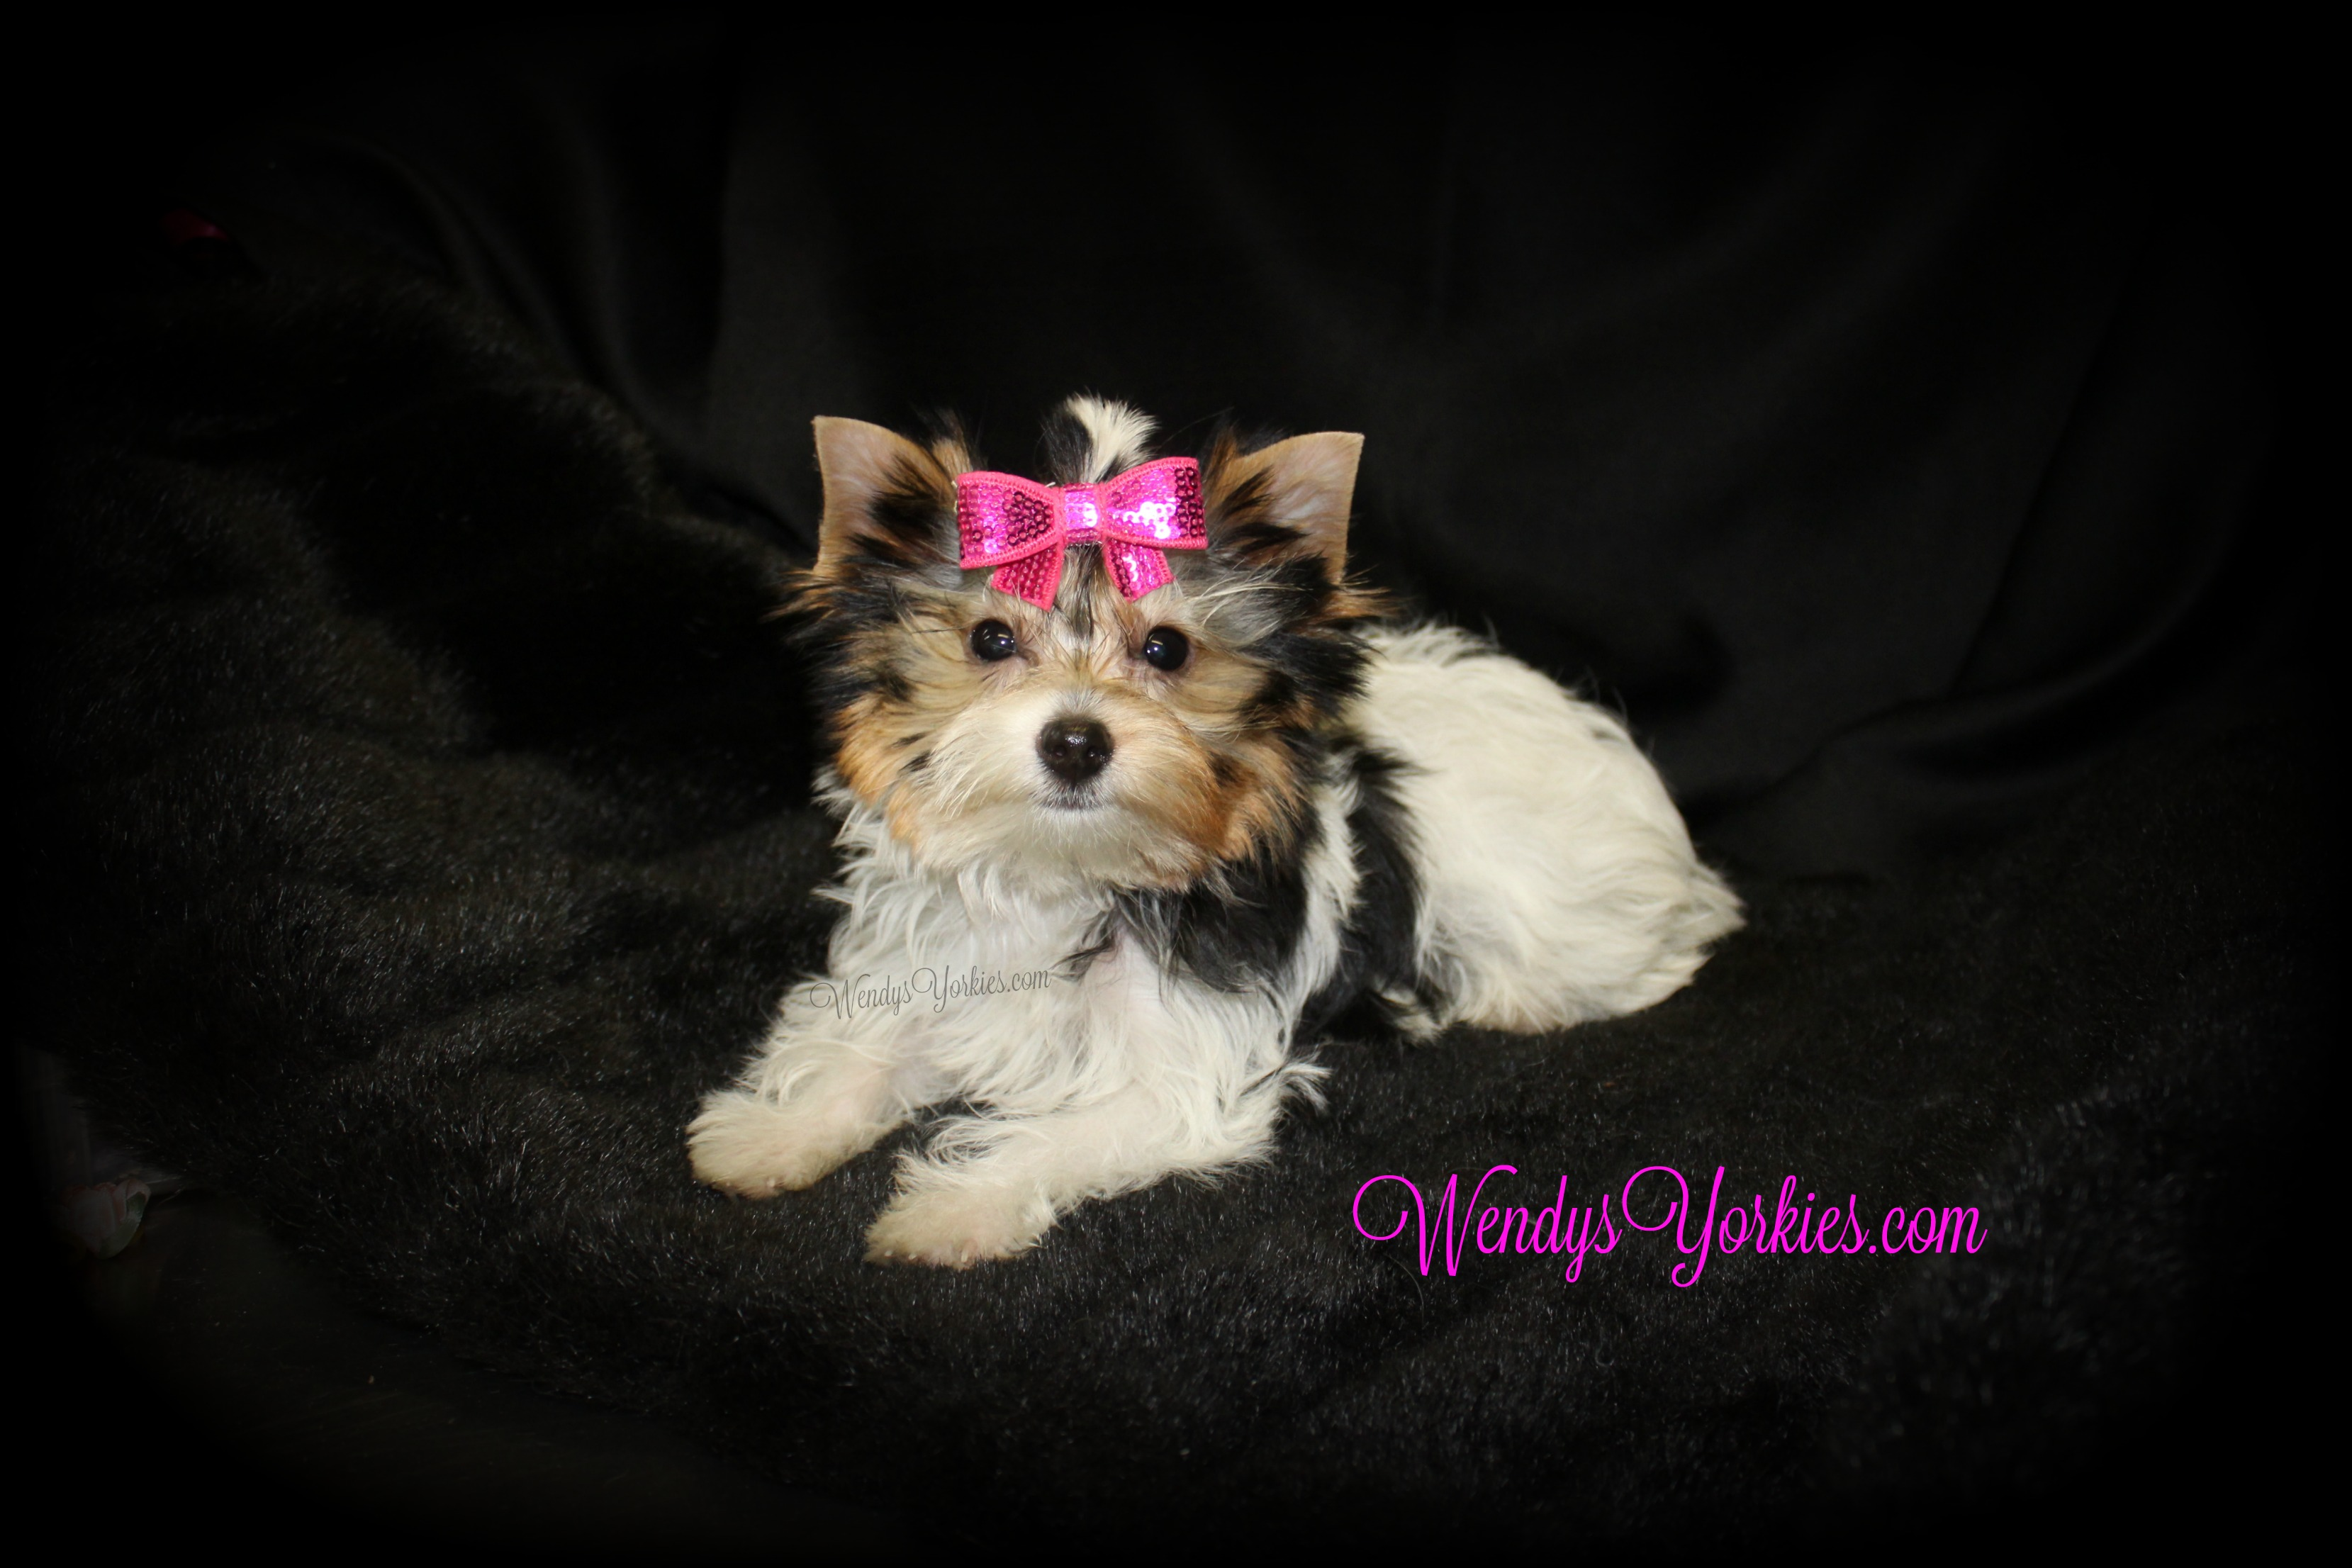 Tiny Teacup Parti Yorkie puppy for sale, WendysYorkies.com, Daisy pf1